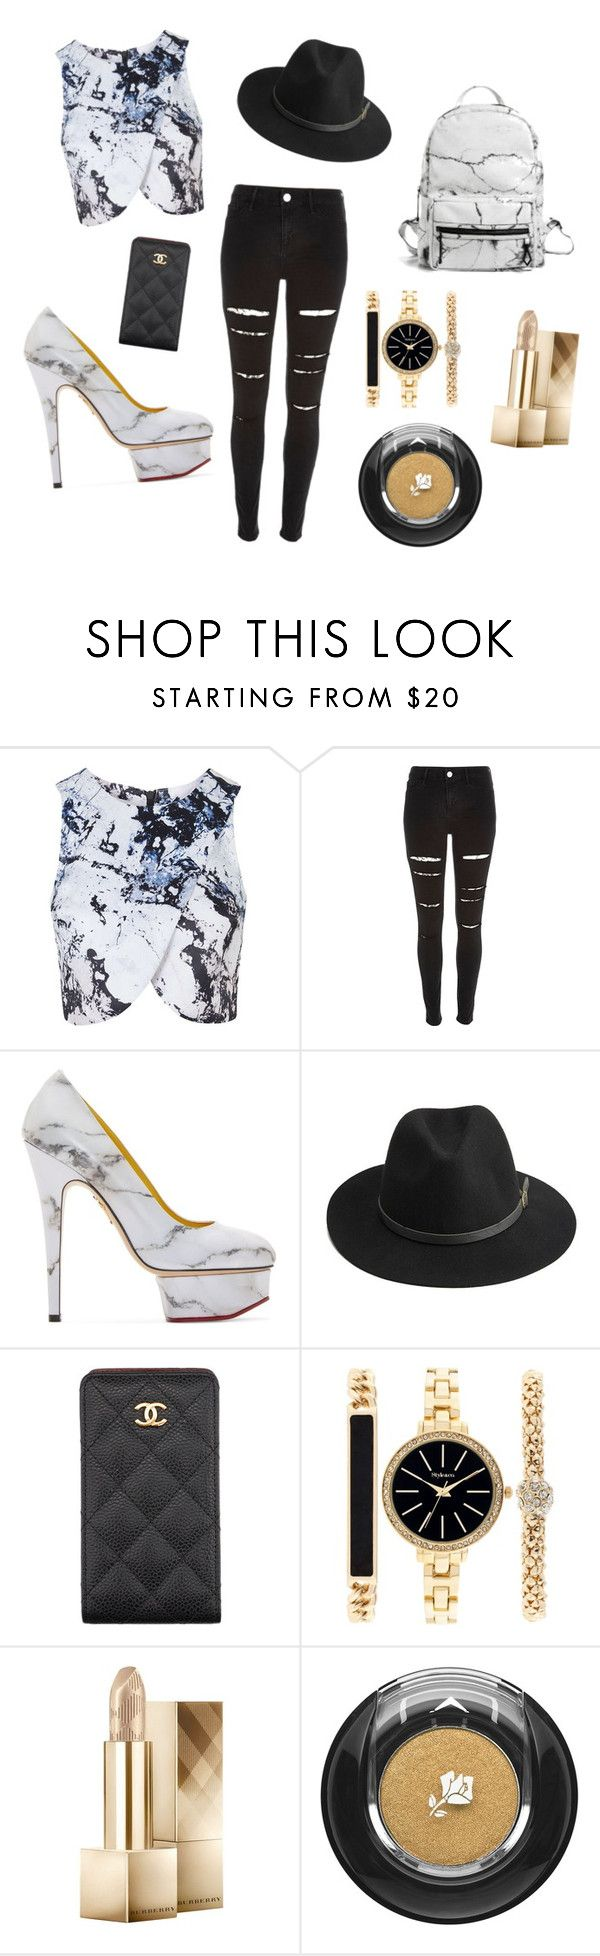 """Marble and gold theme"" by gabtez on Polyvore featuring Topshop, River Island, Charlotte Olympia, BeckSöndergaard, Chanel, Style & Co., Burberry, Lancôme and Eddie Borgo"